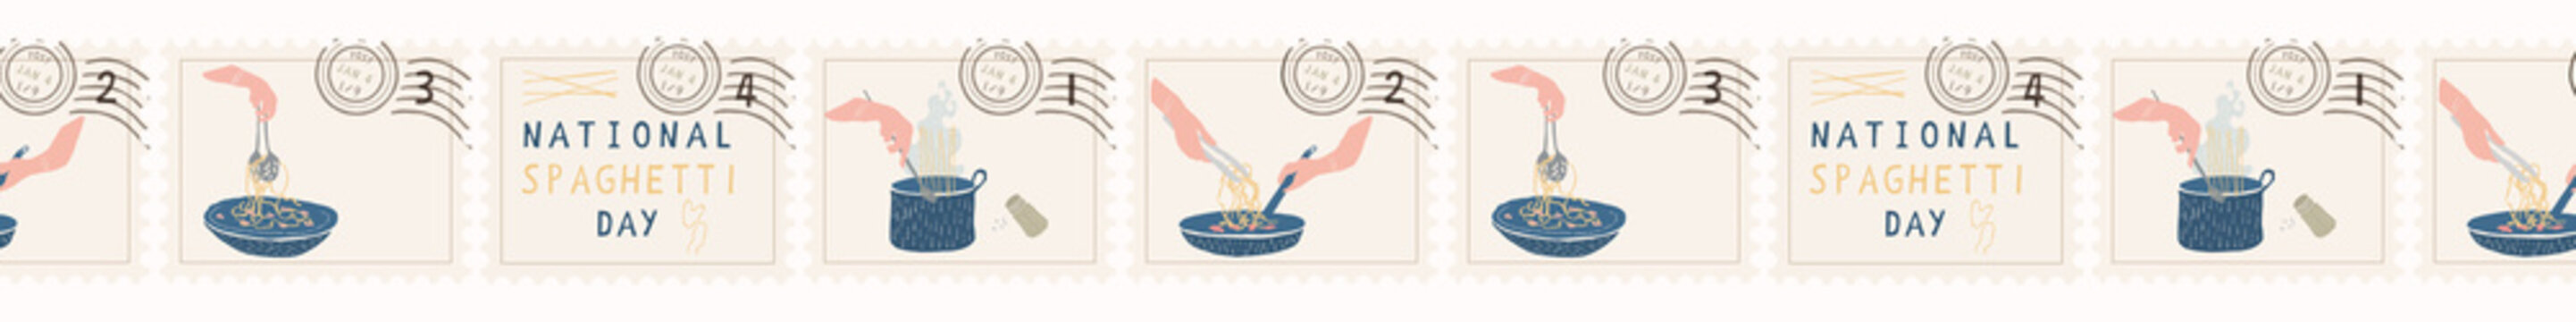 National Spaghetti Day Postage Stamps. Hand Drawn Seamless Vector Border Set. Cooking Pasta Food. Noodles Pot, Bowl, Pan Illustration Cookery Blog, Italian Restaurant Menu, Taste of Italy Celebration